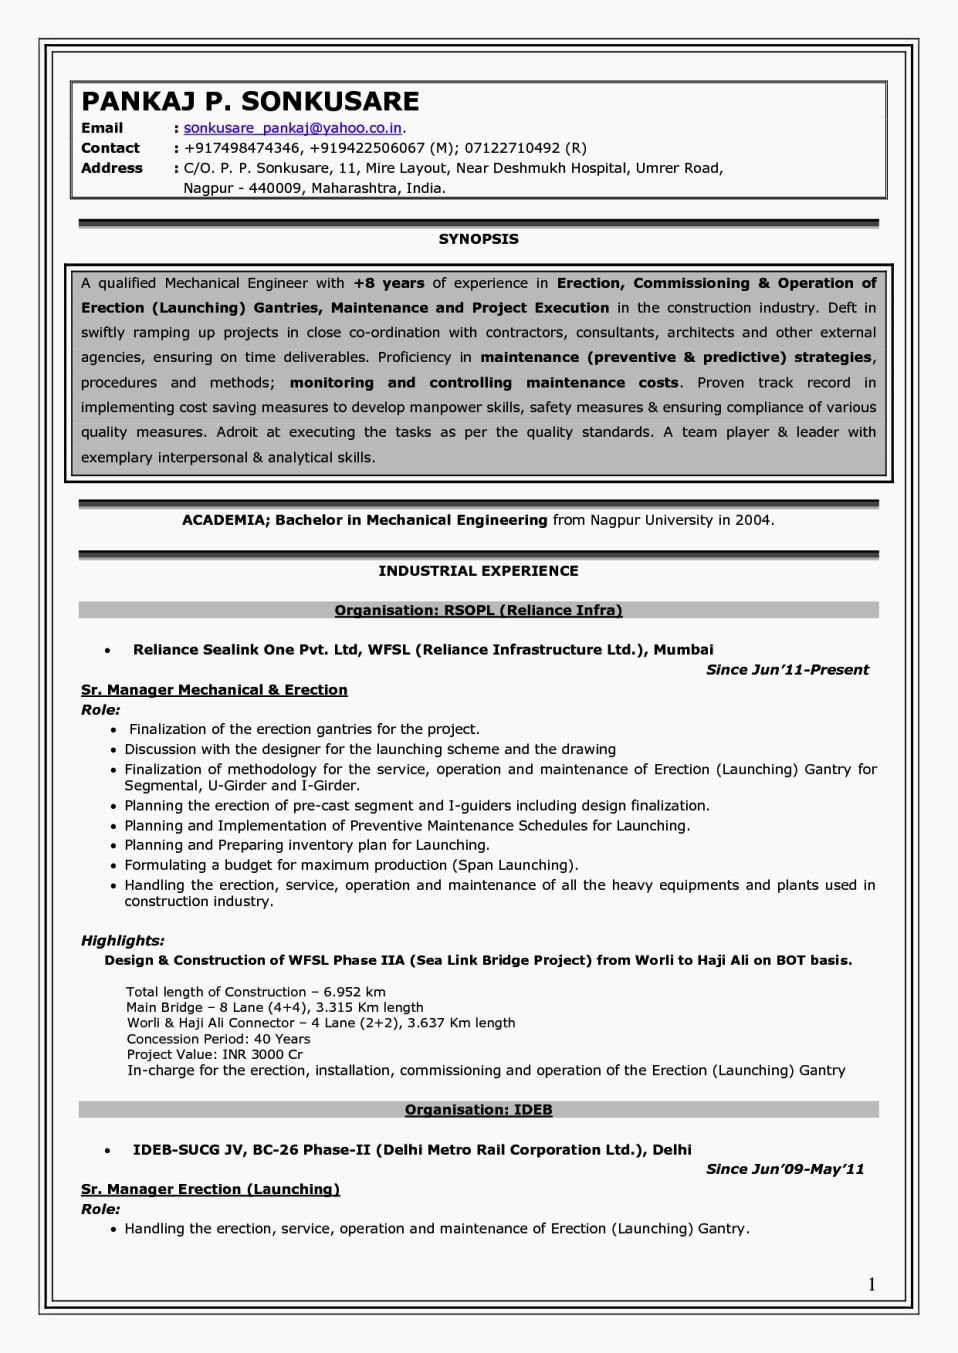 Experienced Mechanical Engineer Resume Awesome Experience Mechanical Engineer Resume Resume Template